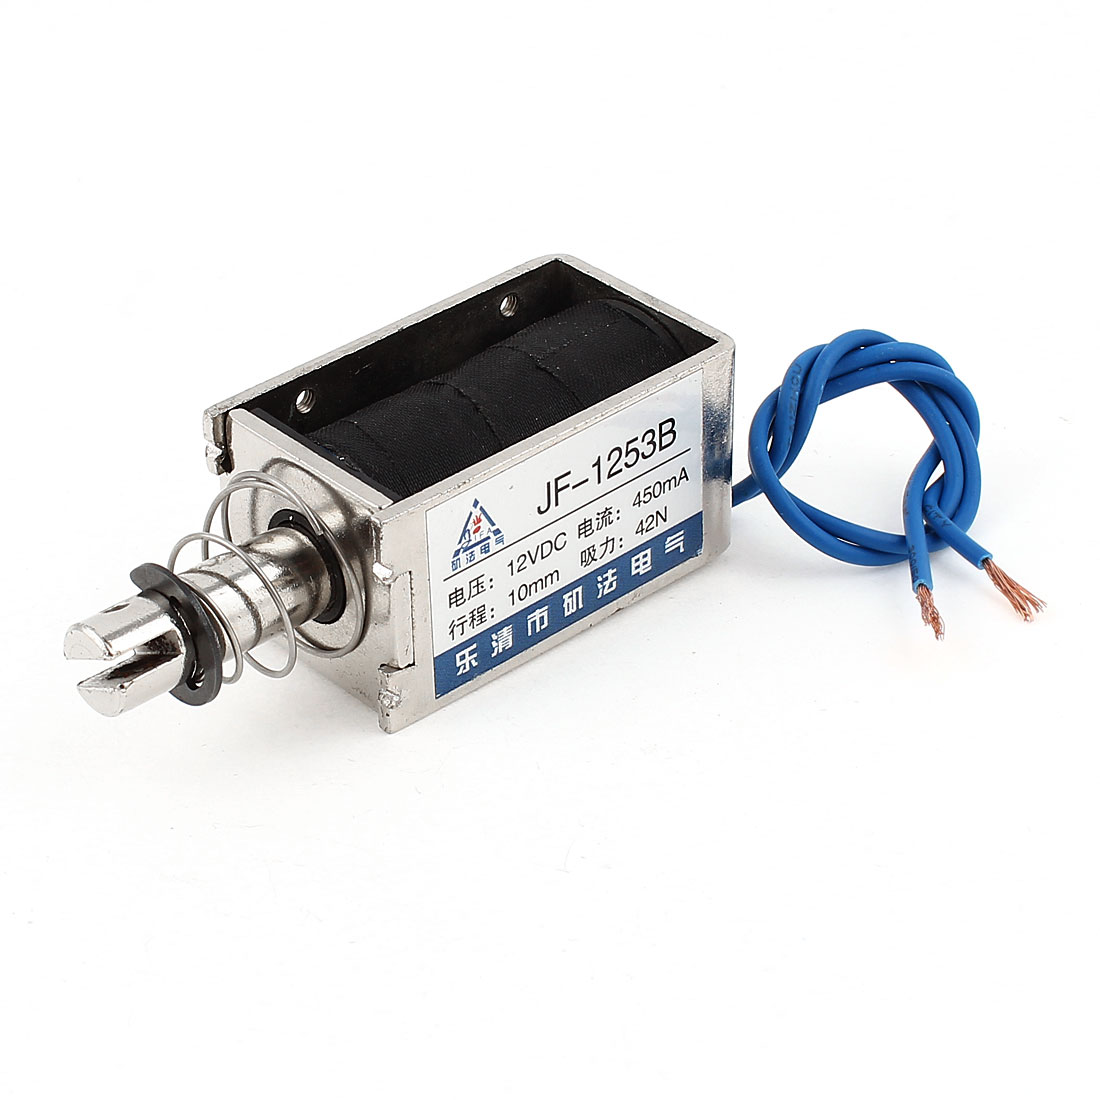 DC 12V 42N 10mm Pull Open Frame Wired Electromagnetic Linear Solenoid